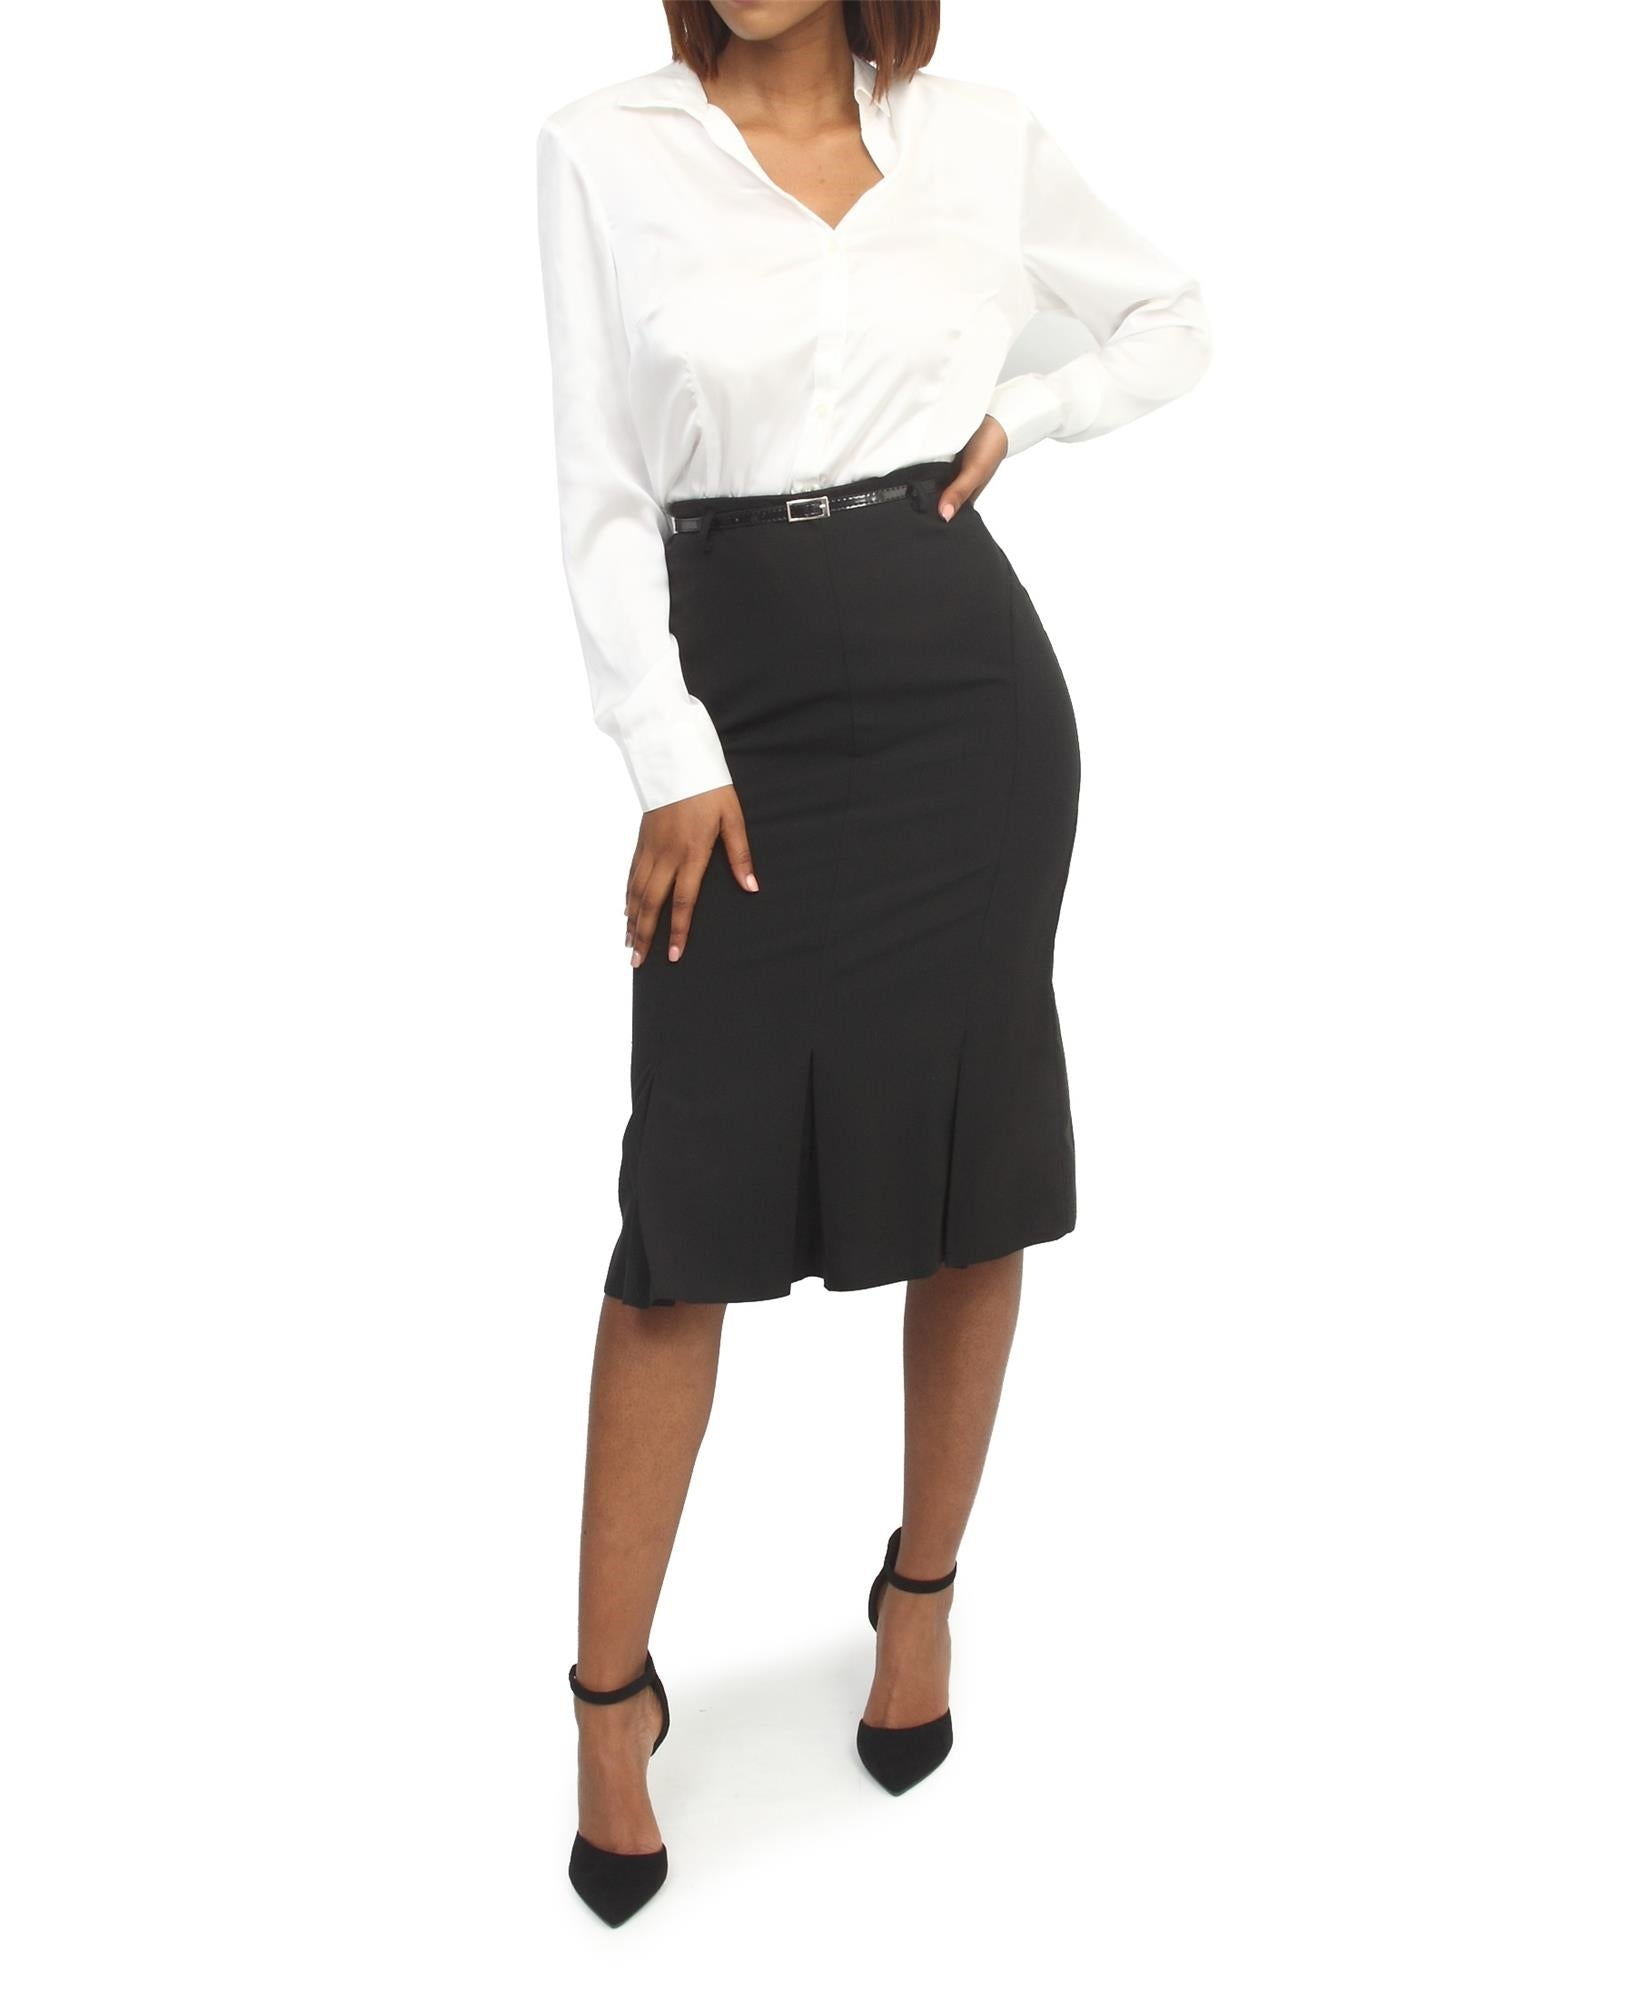 Flared Pencil Skirt - Black